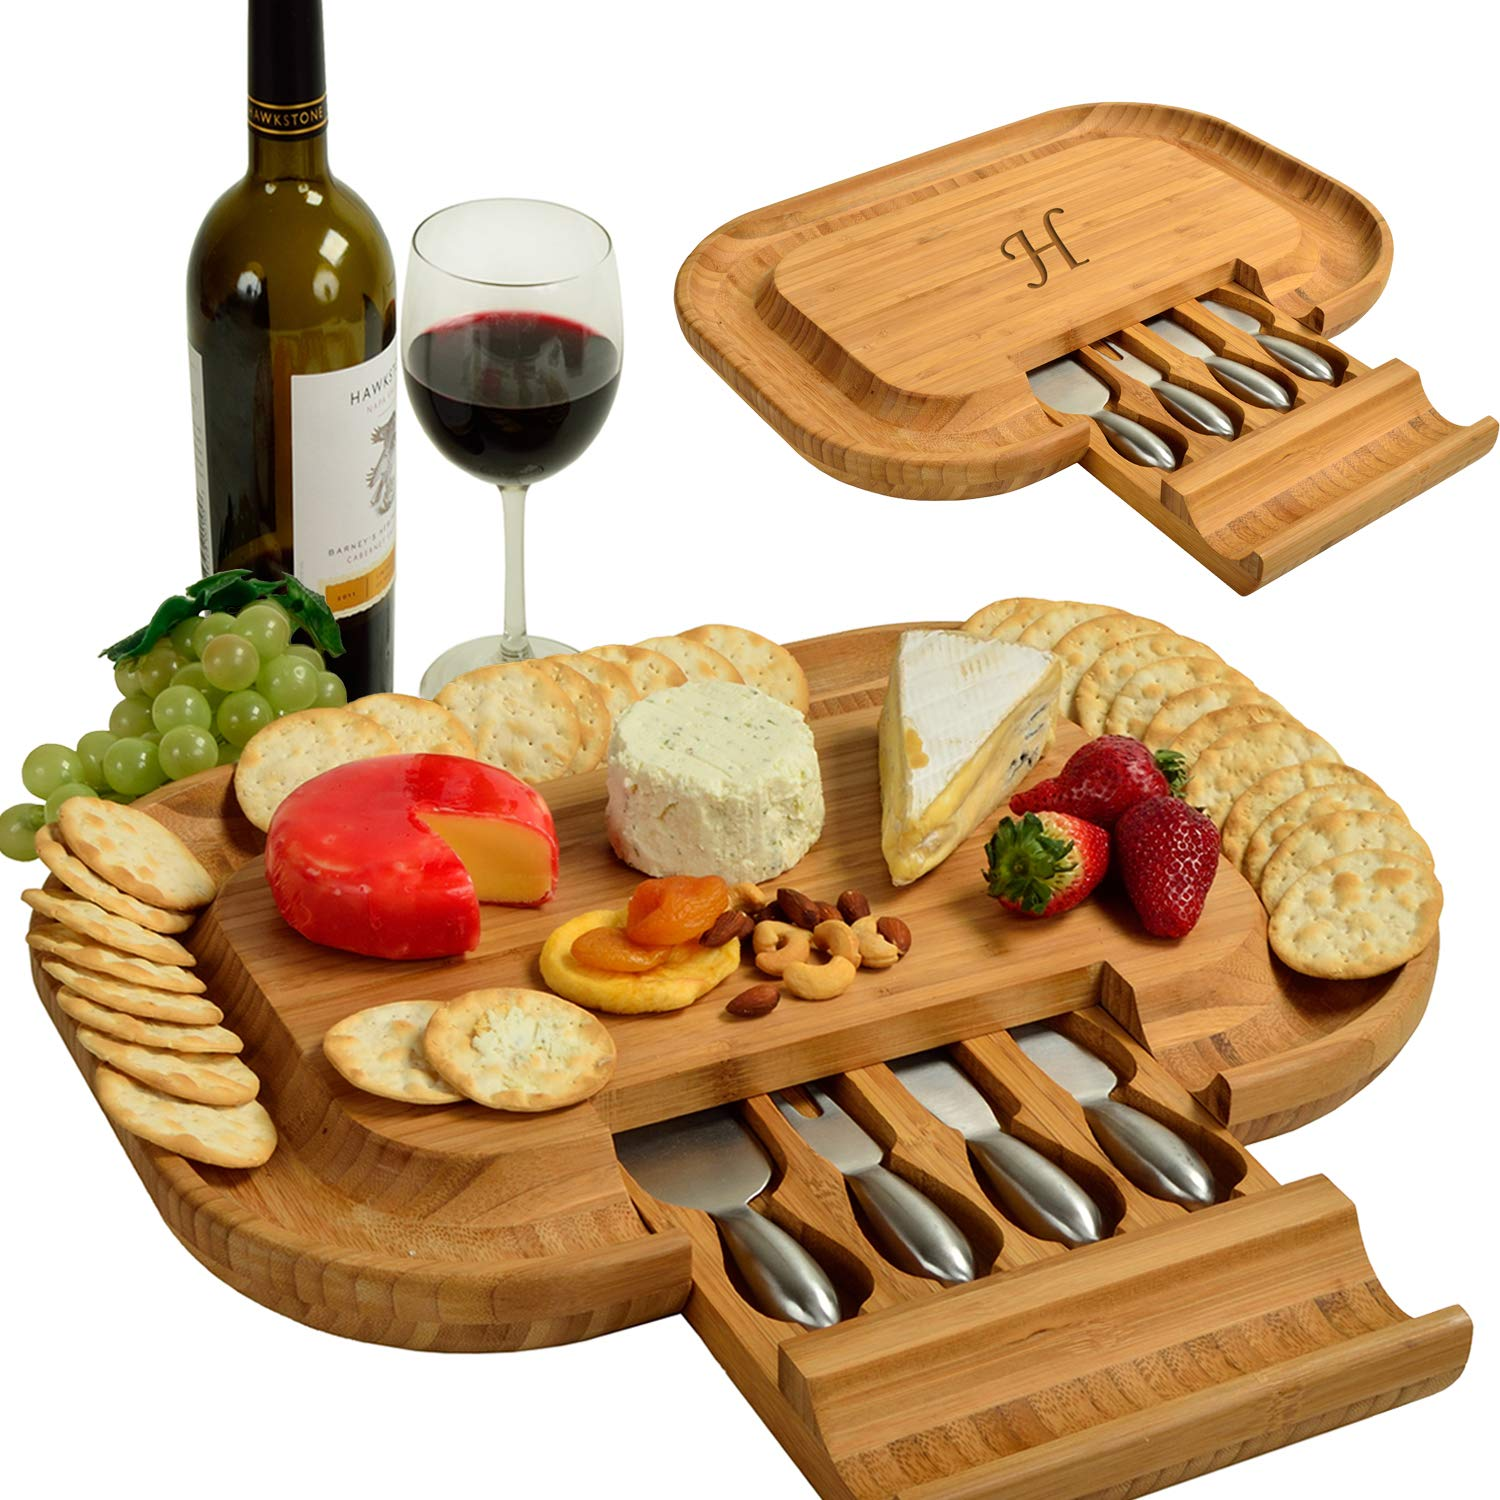 Picnic at Ascot -The''Original'' Personalized Bamboo Cheese Board with Cracker Groove & Integrated Drawer with Cheese Knife Set & Markers- Designed & Quality Assured in the USA - Letter - H